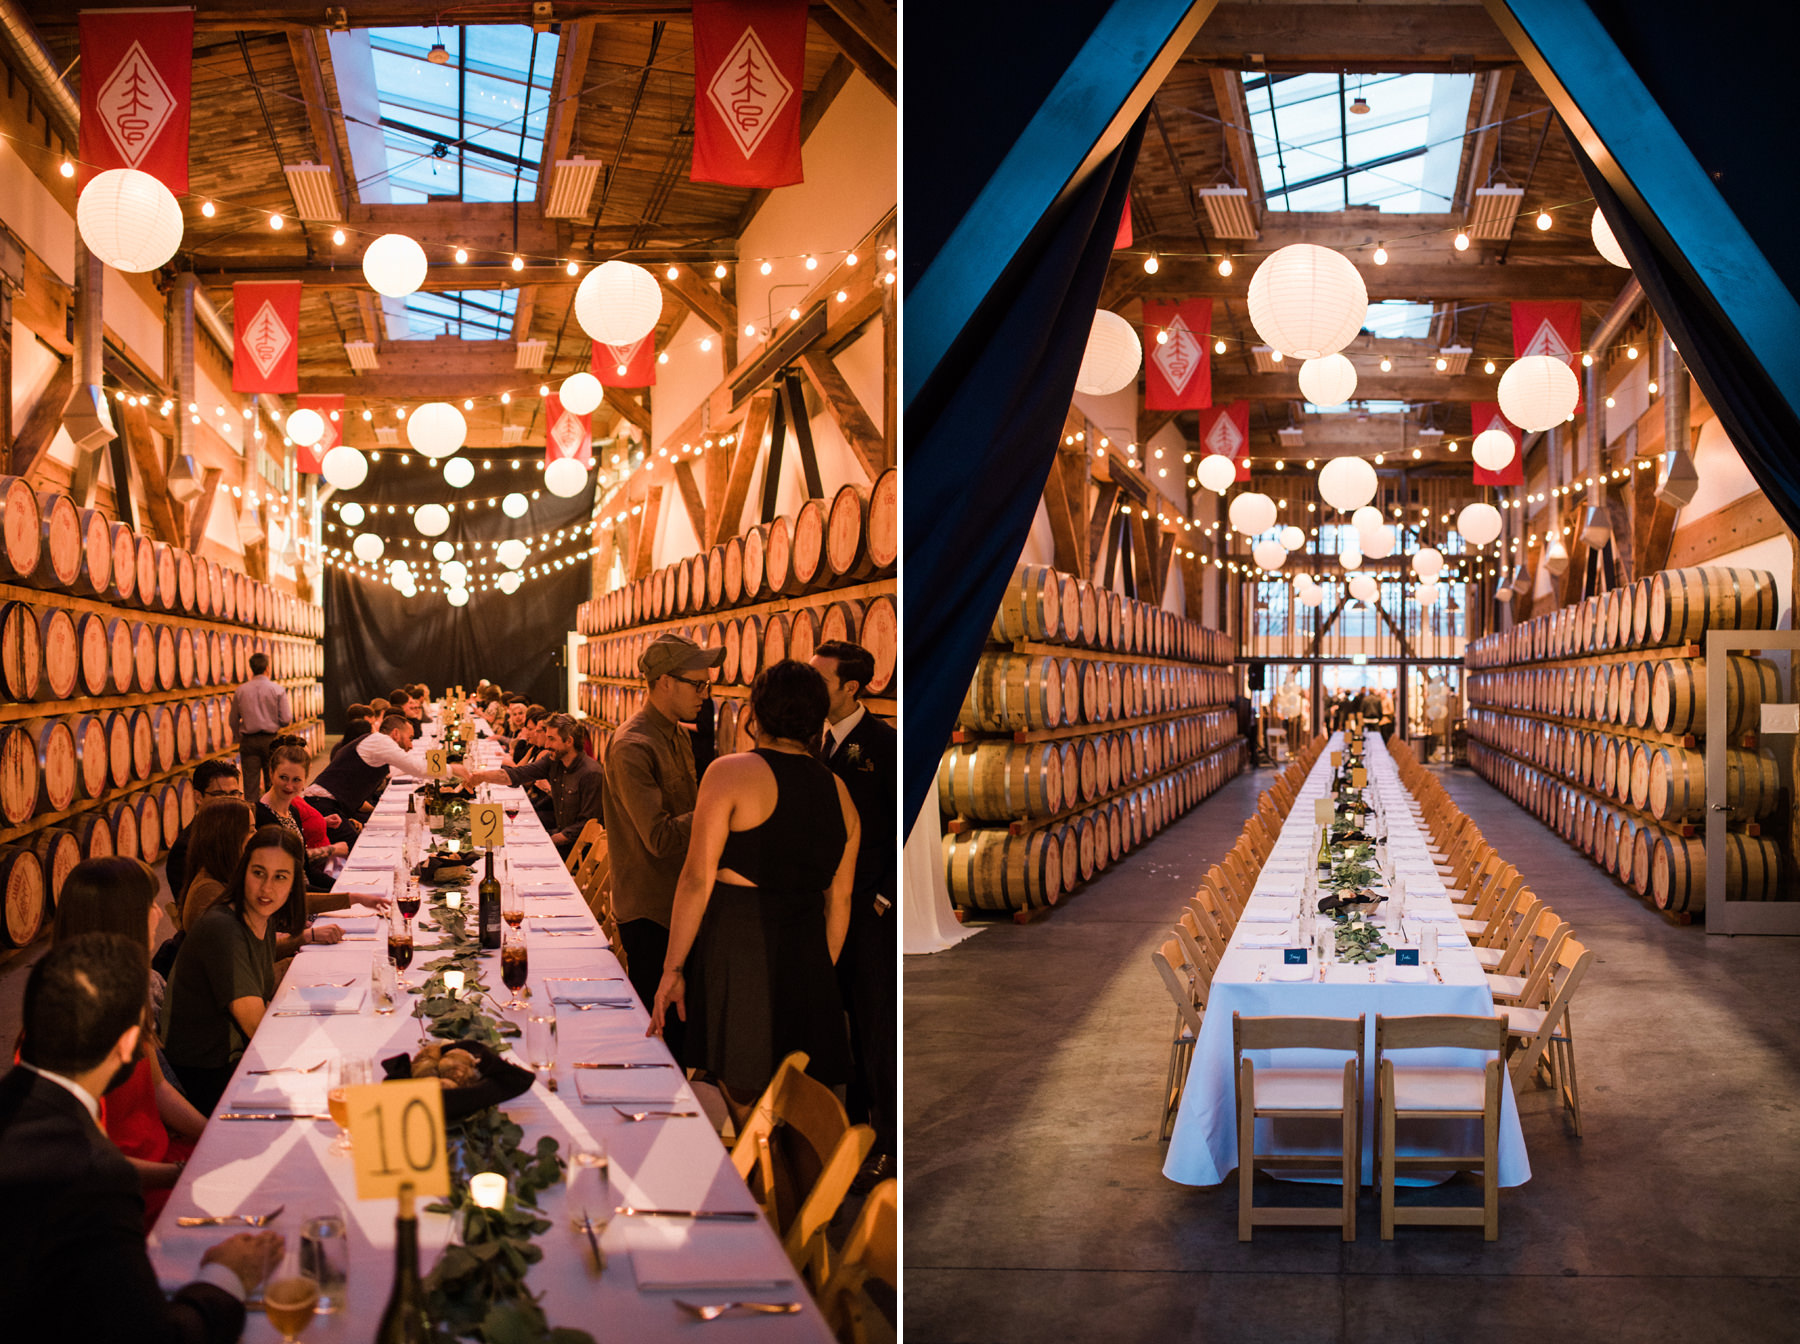 066-long-table-wedding-dinner-under-string-lights-at-westland-distillery.jpg